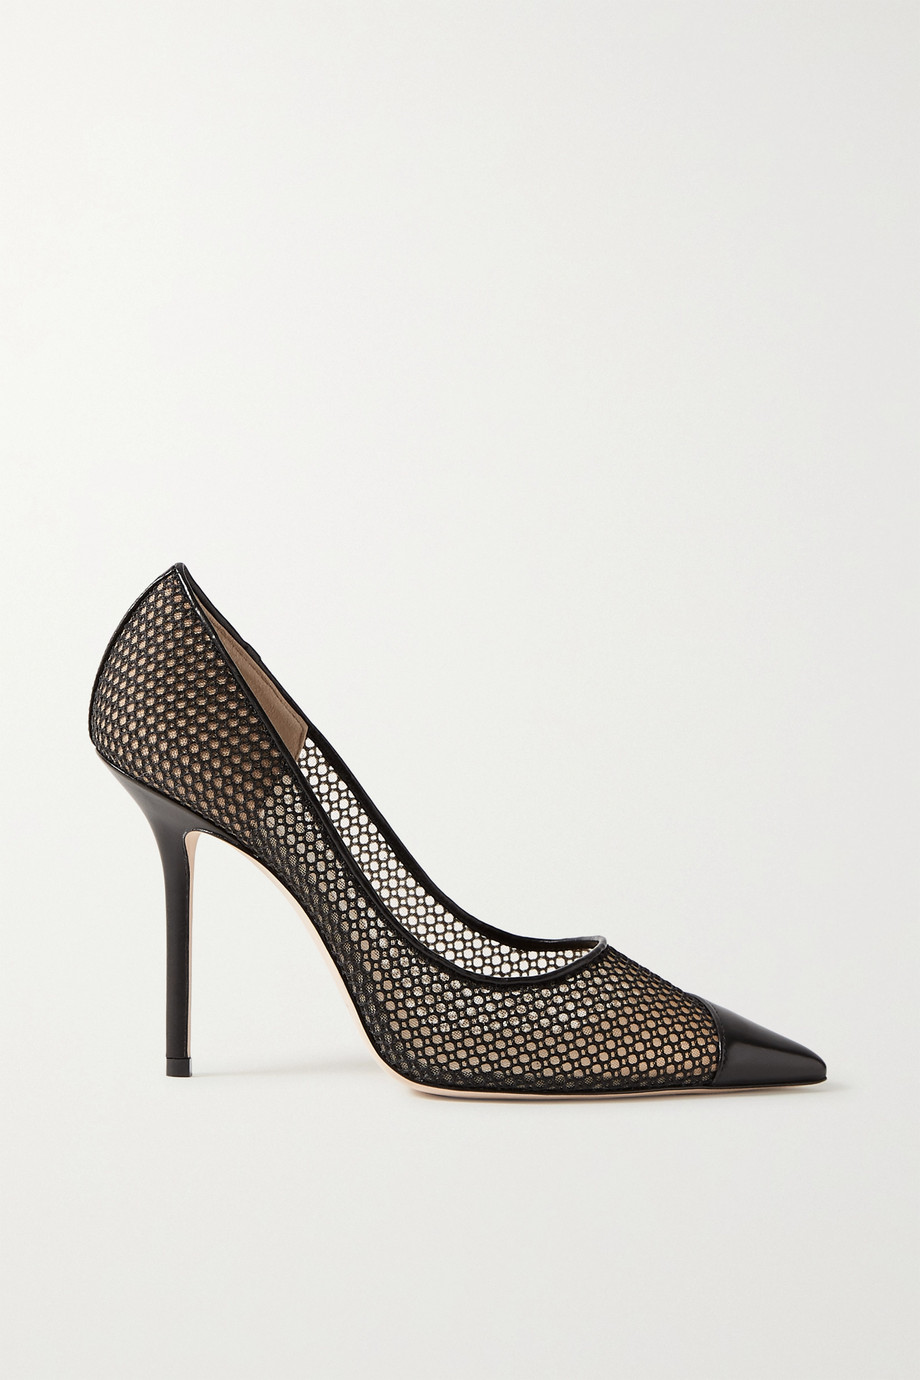 Jimmy Choo Love 100 leather-trimmed fishnet pumps